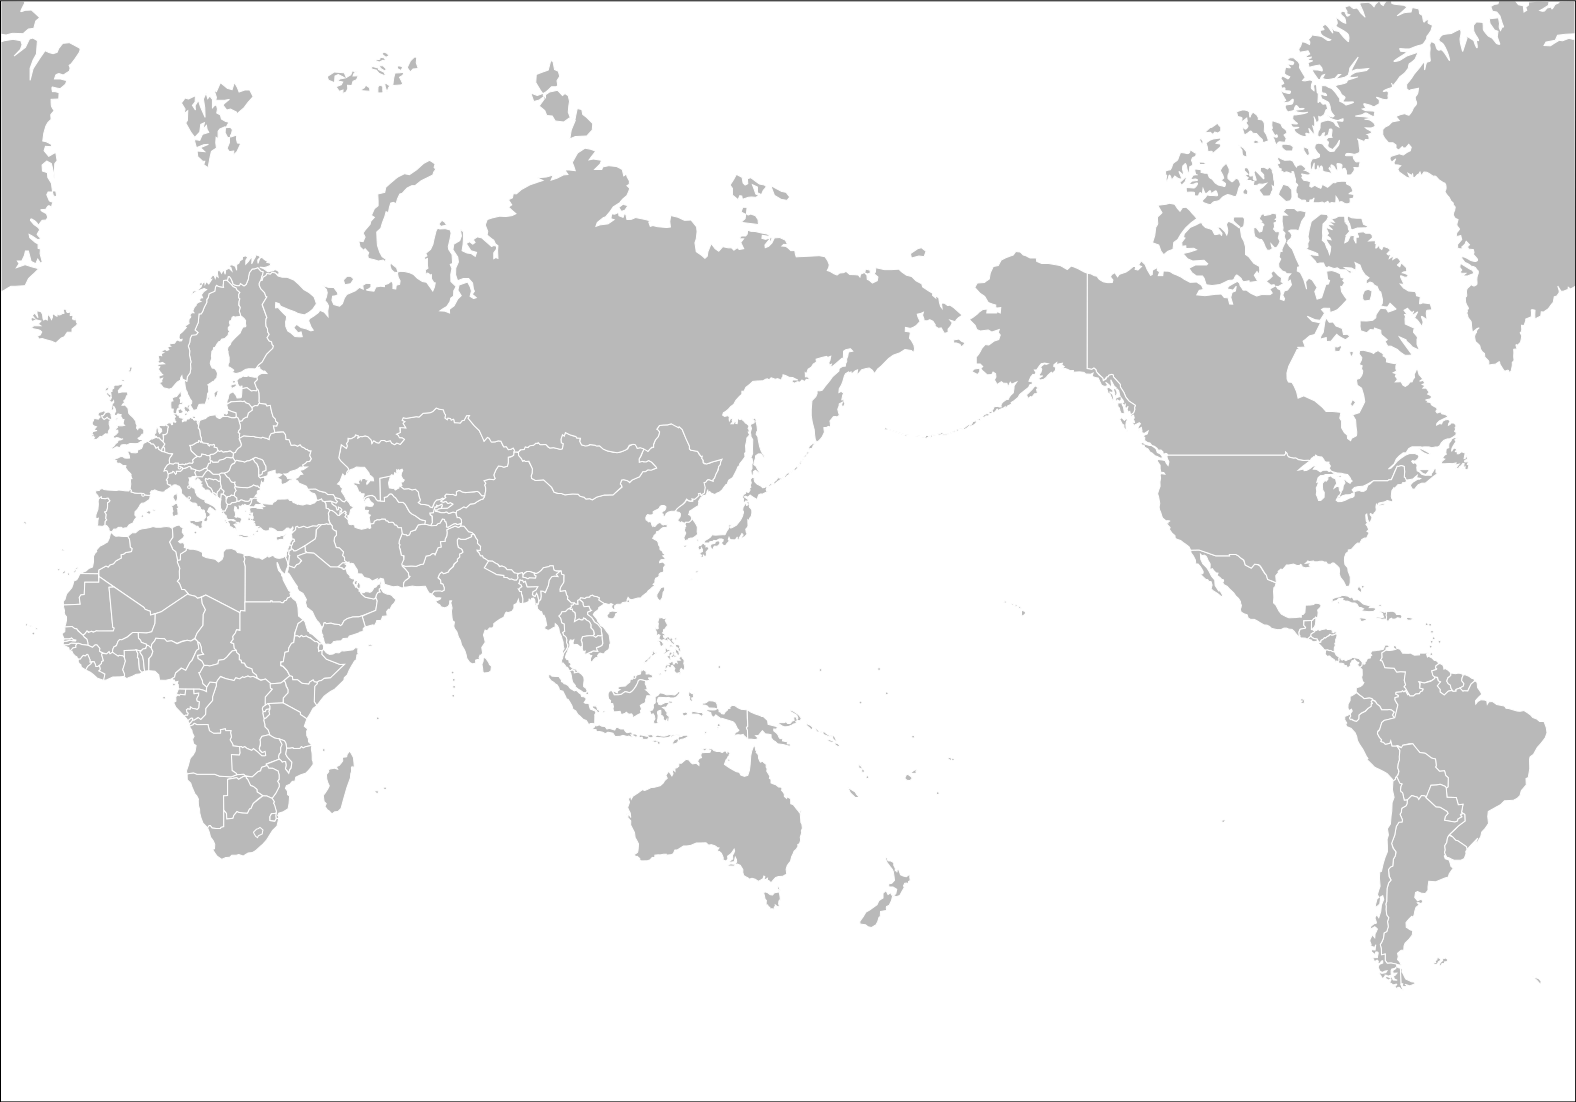 File:Blank Map Pacific World.svg.